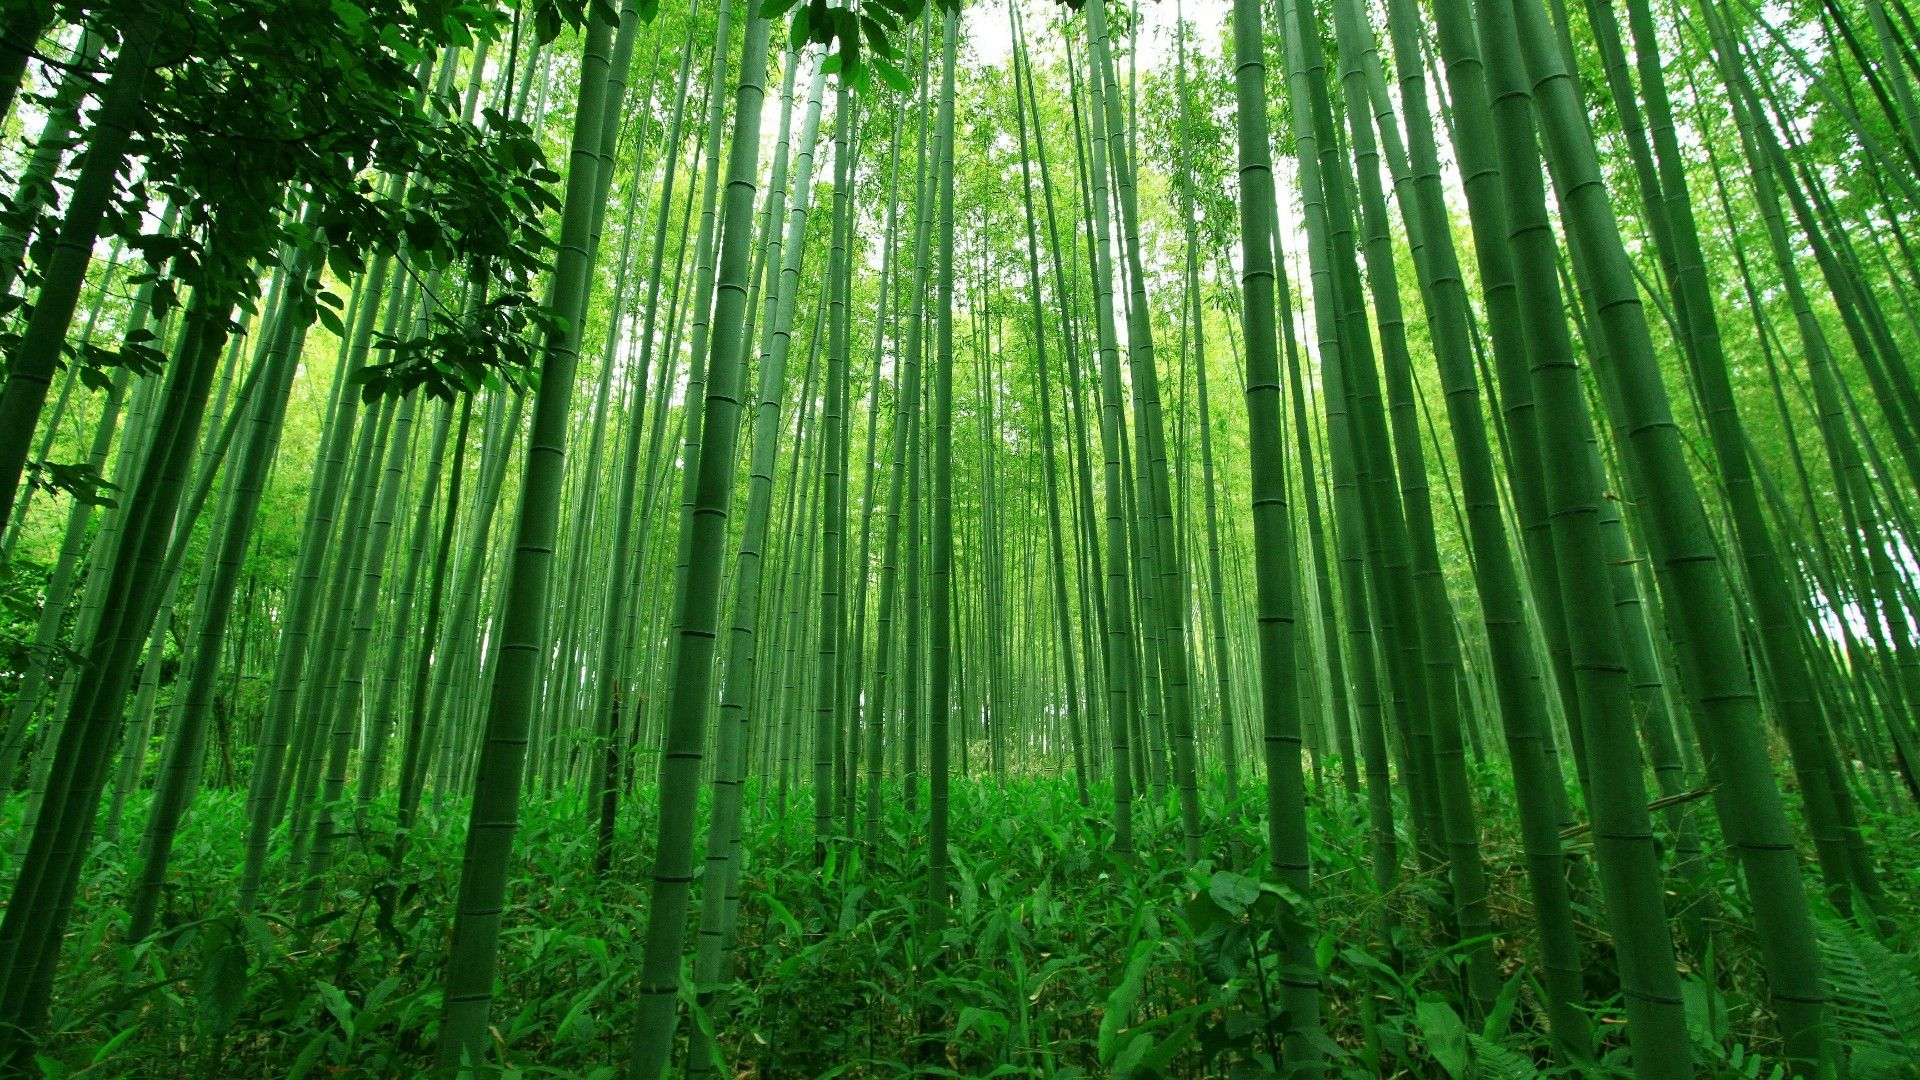 Bamboo Forest 的圖片搜尋結果 Forest Wall Mural Bamboo Forest